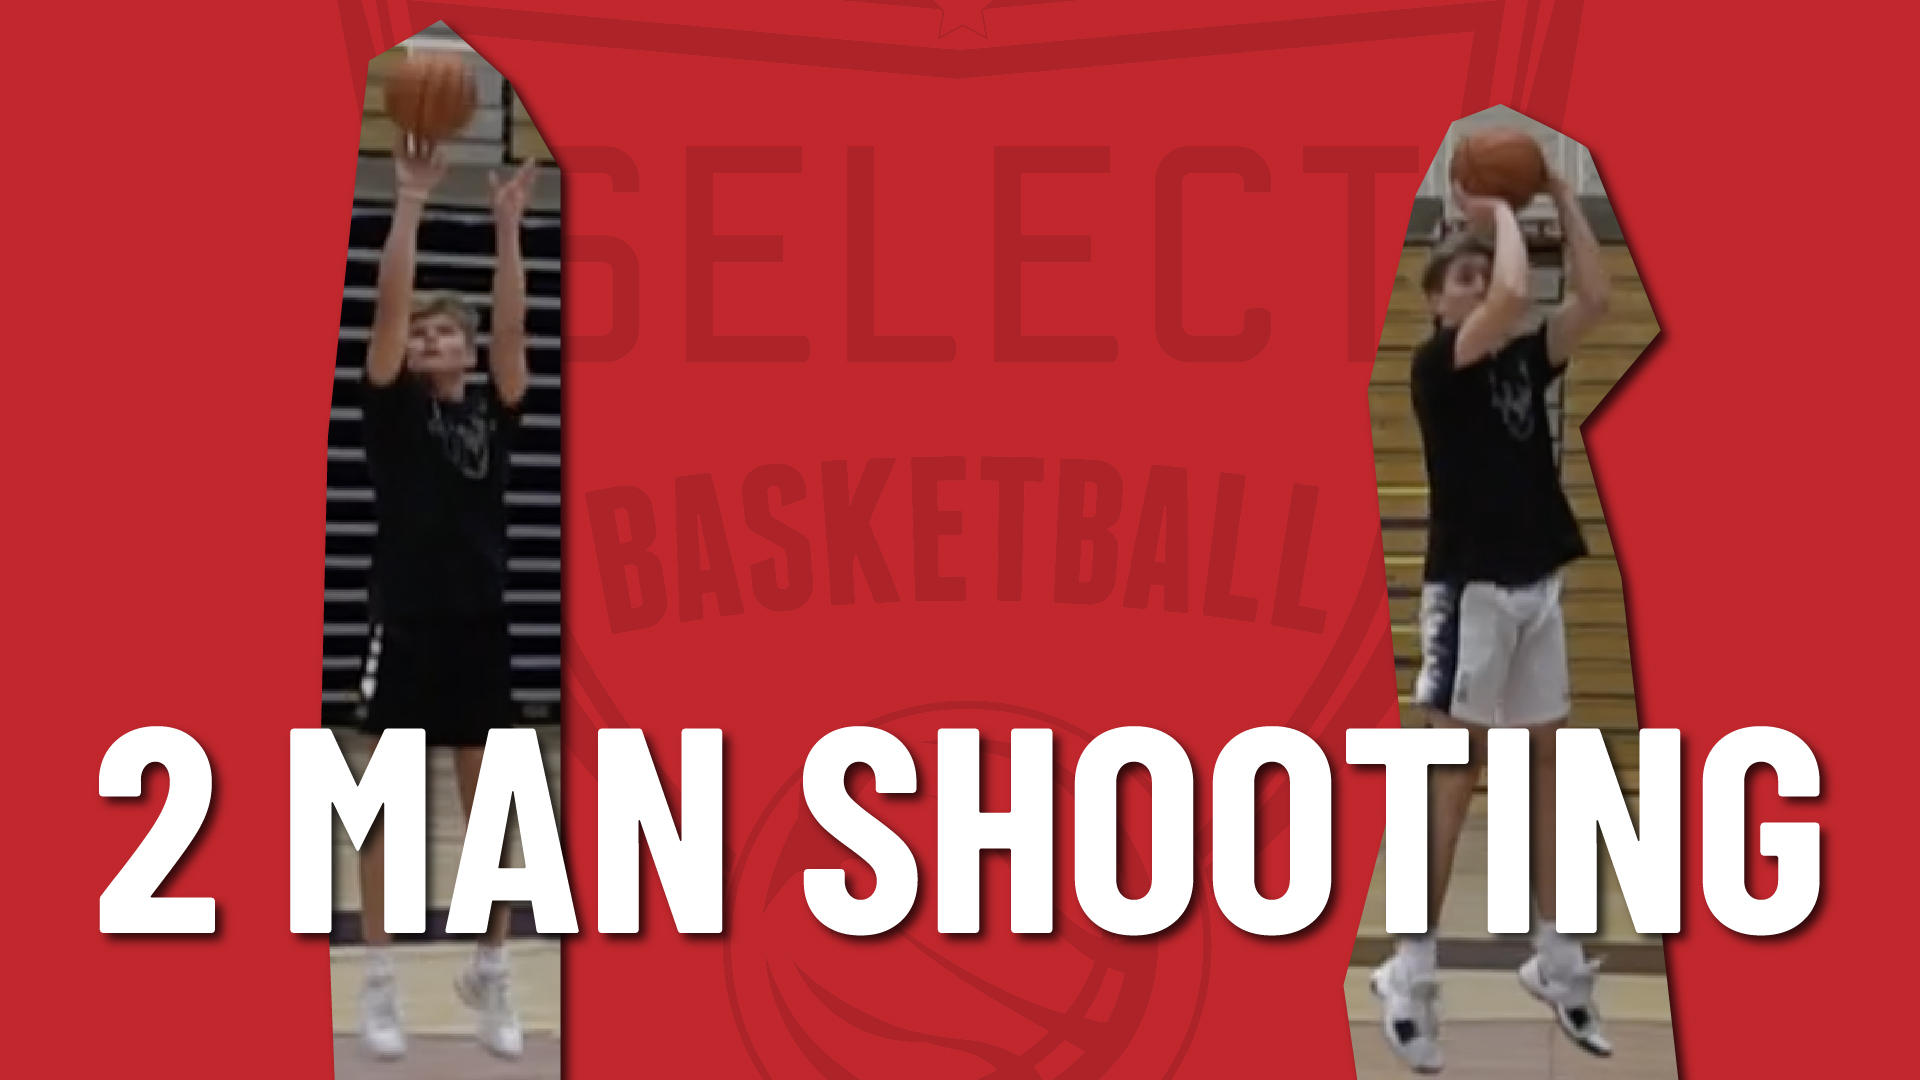 This basketball drill is great for developing skills off an inside-catch. Players develop various attack moves to create separation.